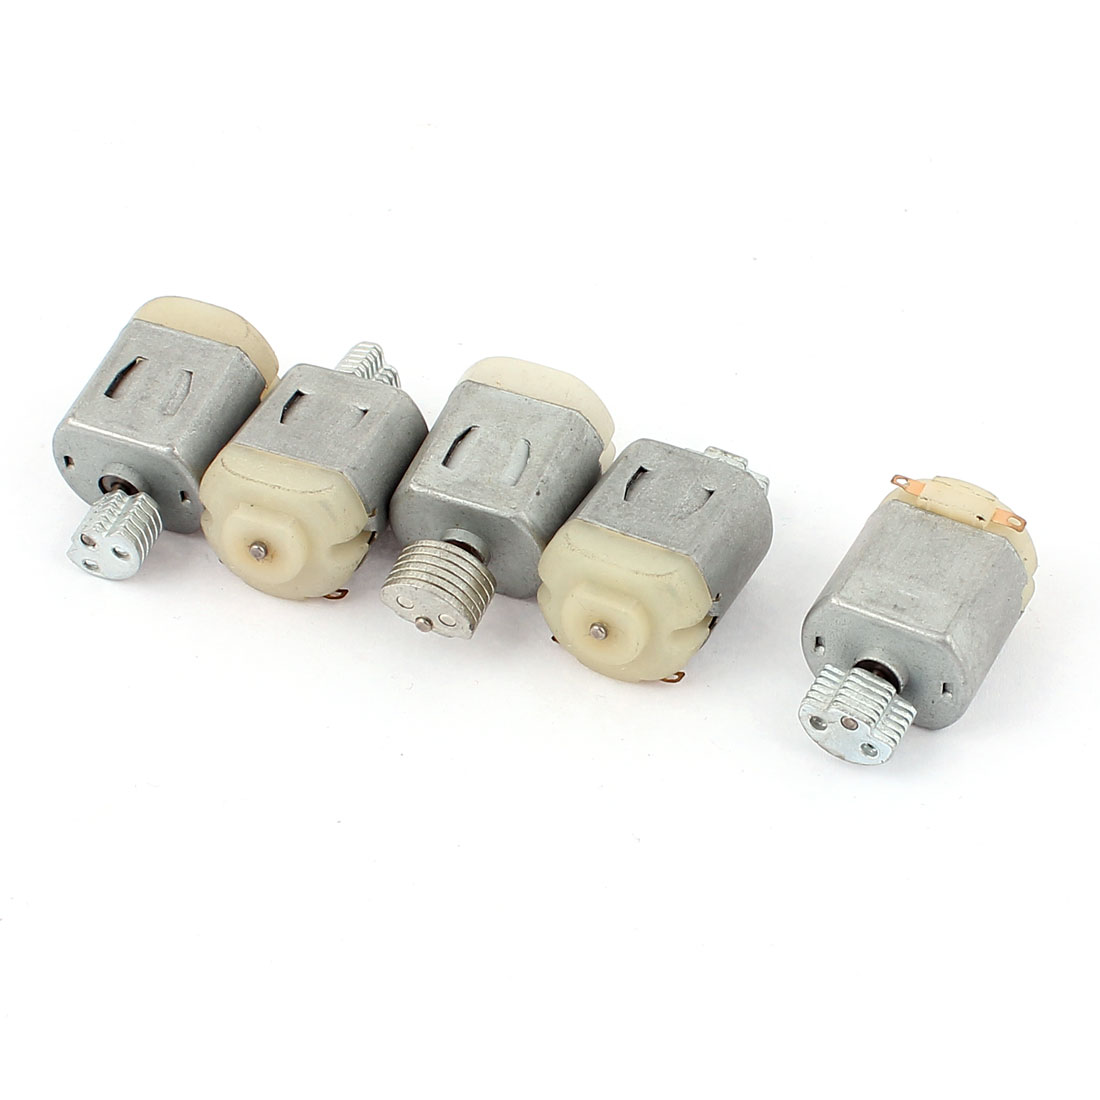 5 Pcs DC 1.5-4.5V 18000RPM Vibration Electric Micro Mini Motor for Massager